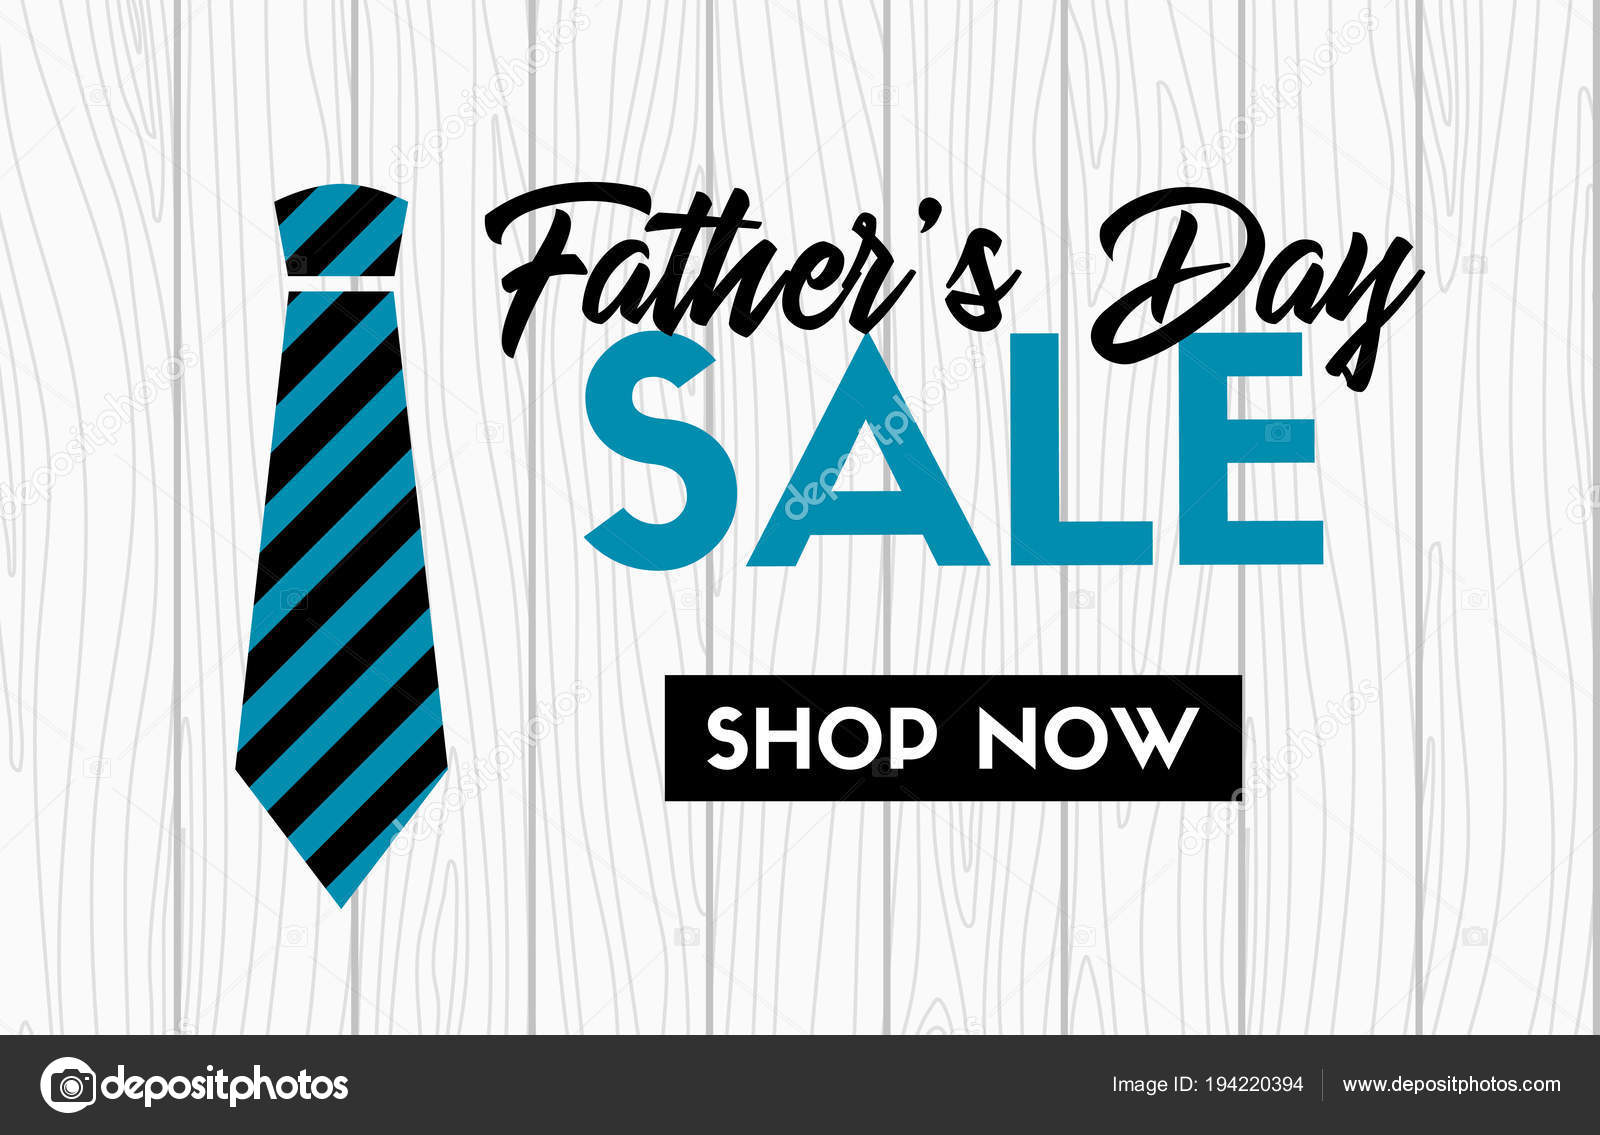 fathers day sale vector banner with necktie web promotional